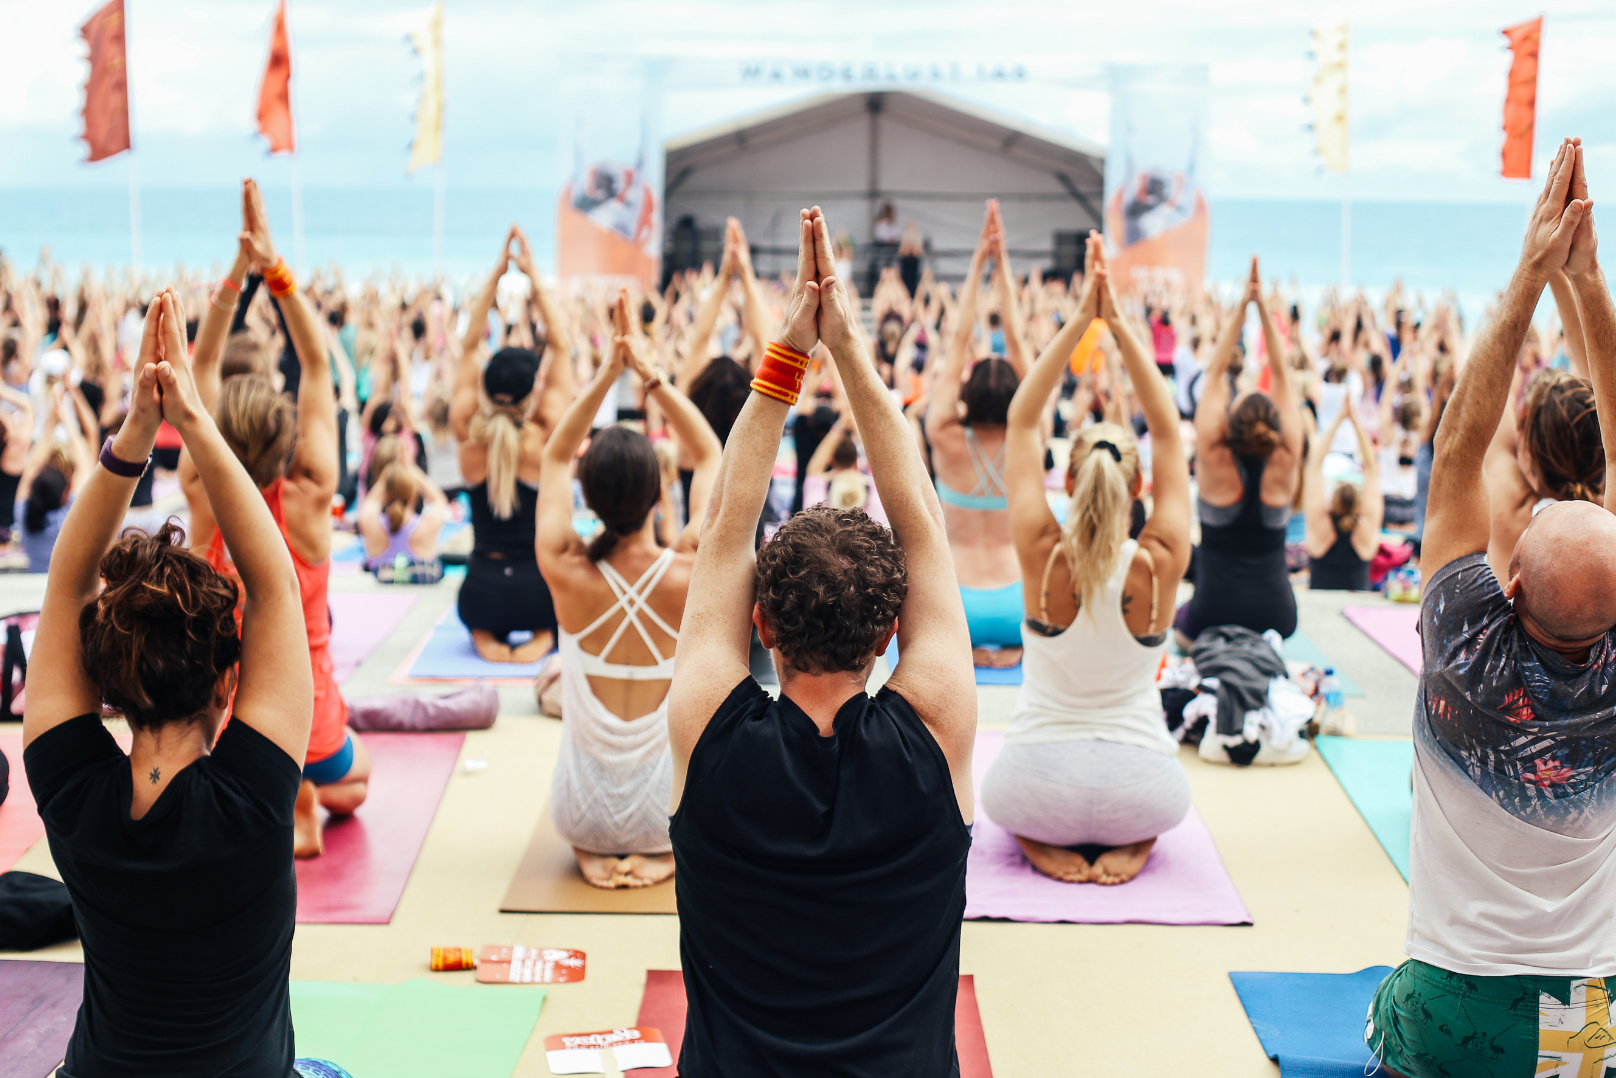 A yoga workshop with several people folding hands above their head